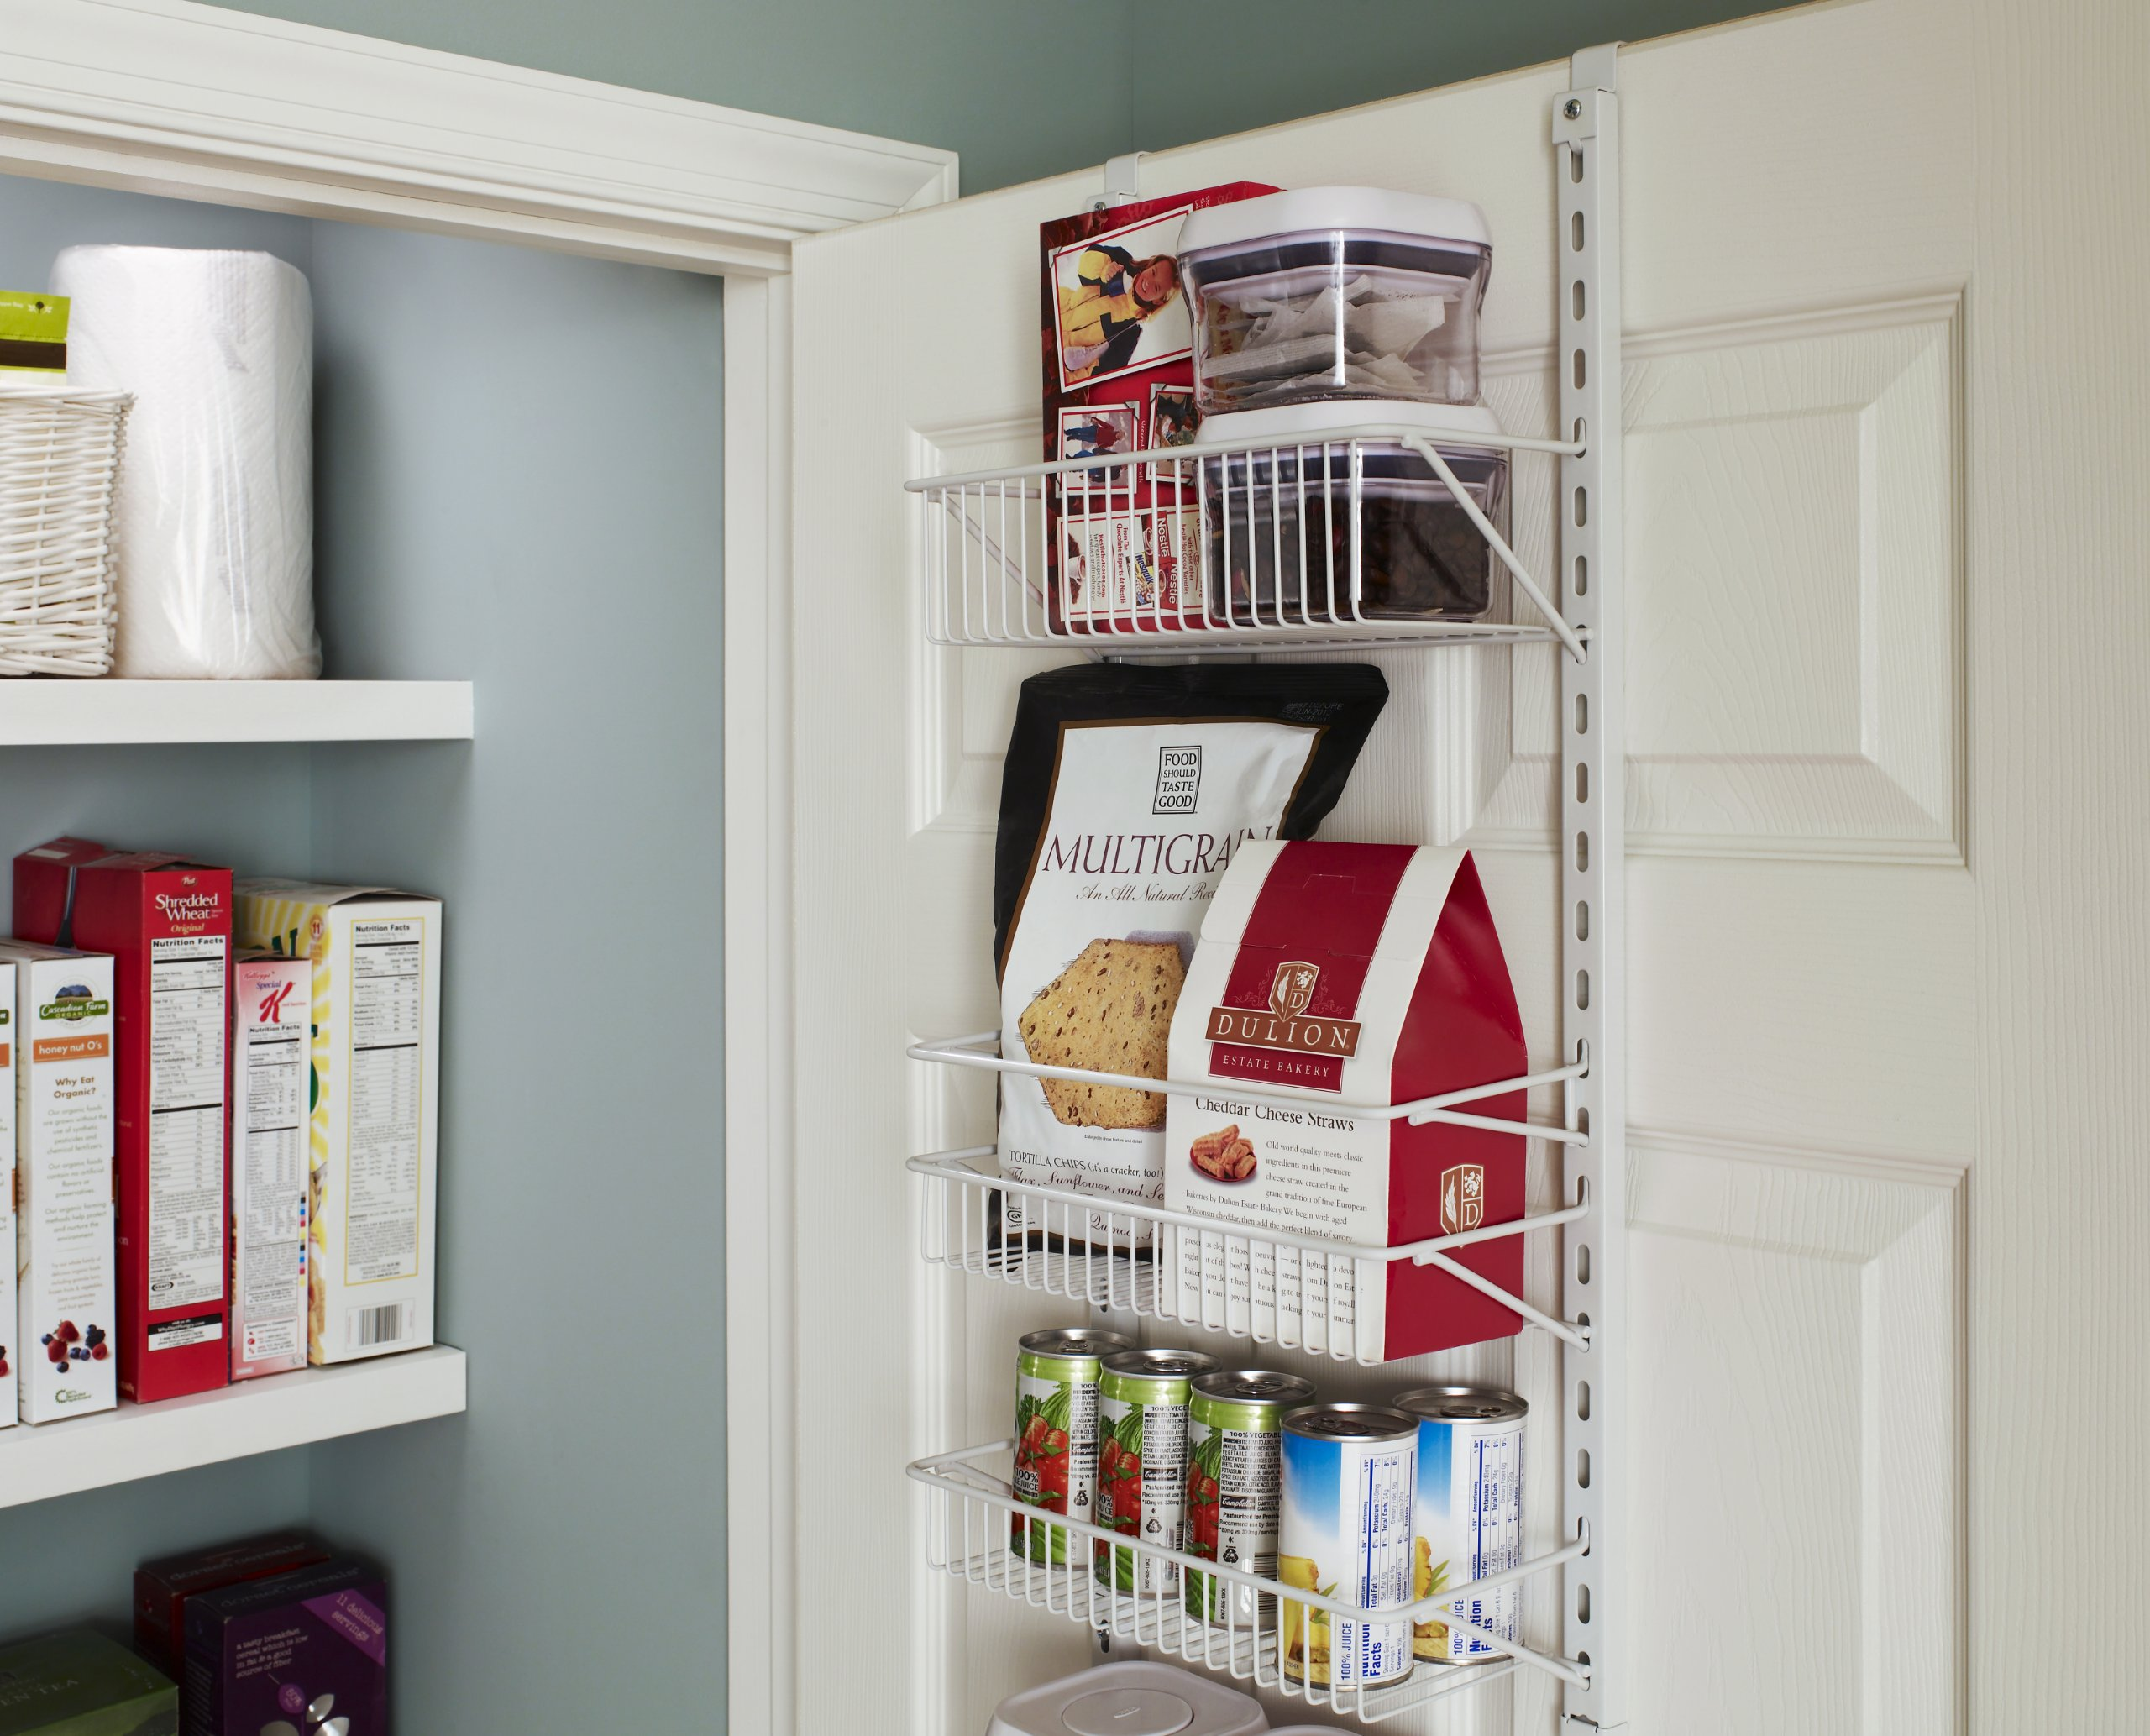 Closetmaid adjustable 8-tier wall and door rack 5 store and organize items of various sizes. Easily reposition baskets to accommodate tall and short items. Close wire spacing on baskets keeps items from tilting. Wall and over-the-door solution is perfect for kitchen and pantry organization.